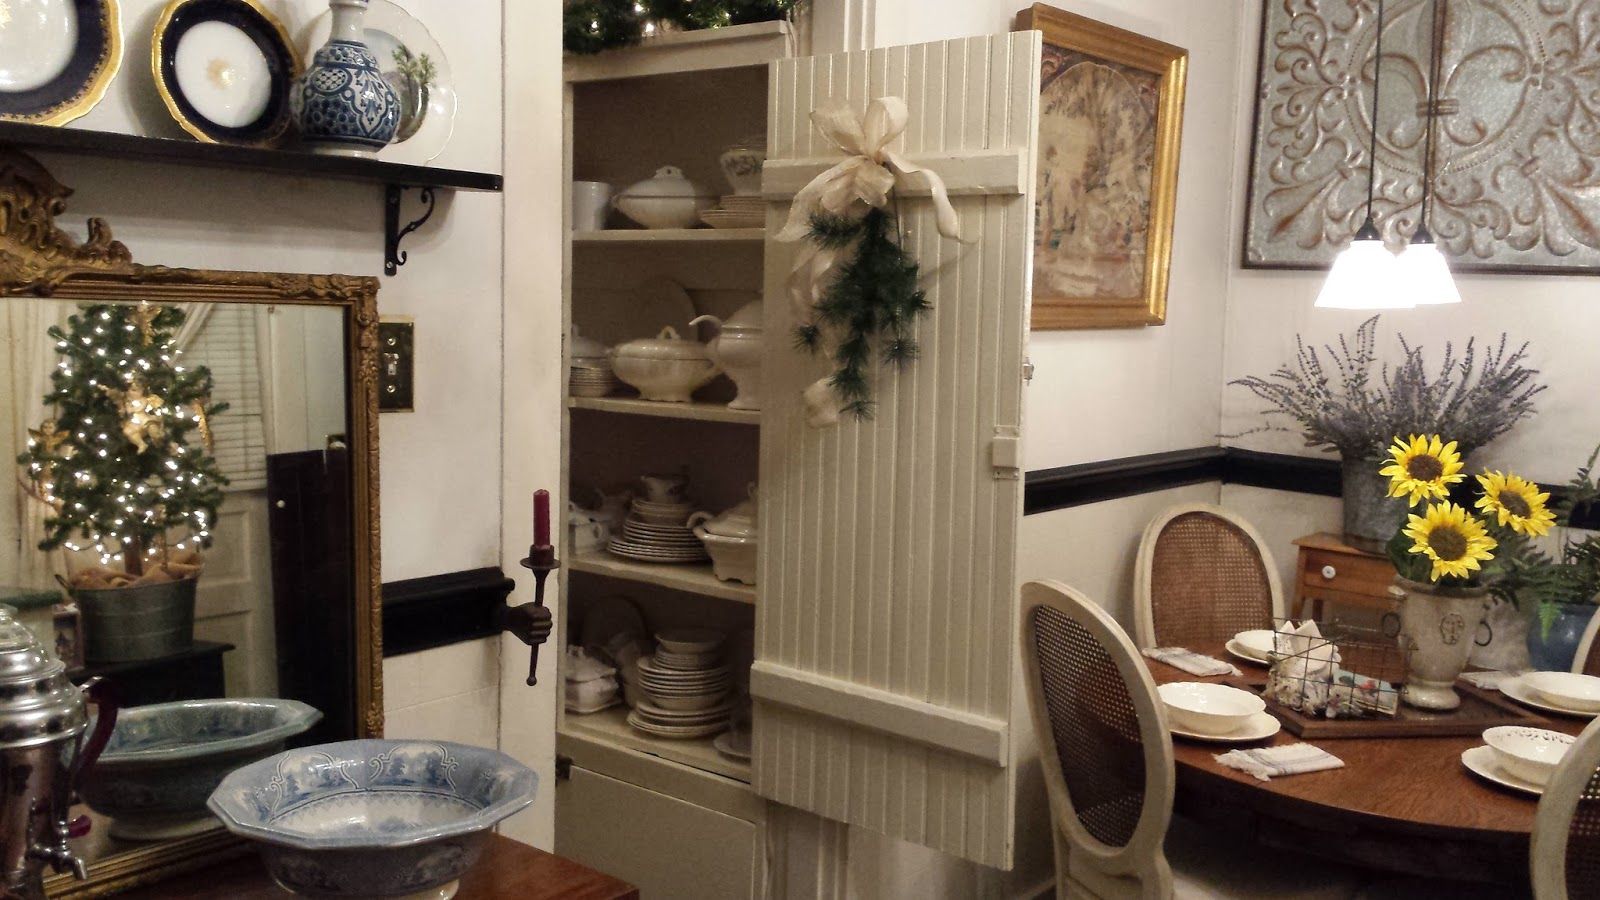 Cane Furniture Works Really Well In An Old World Farmhouse Kitchen Whether  Painted Or Left Natural.